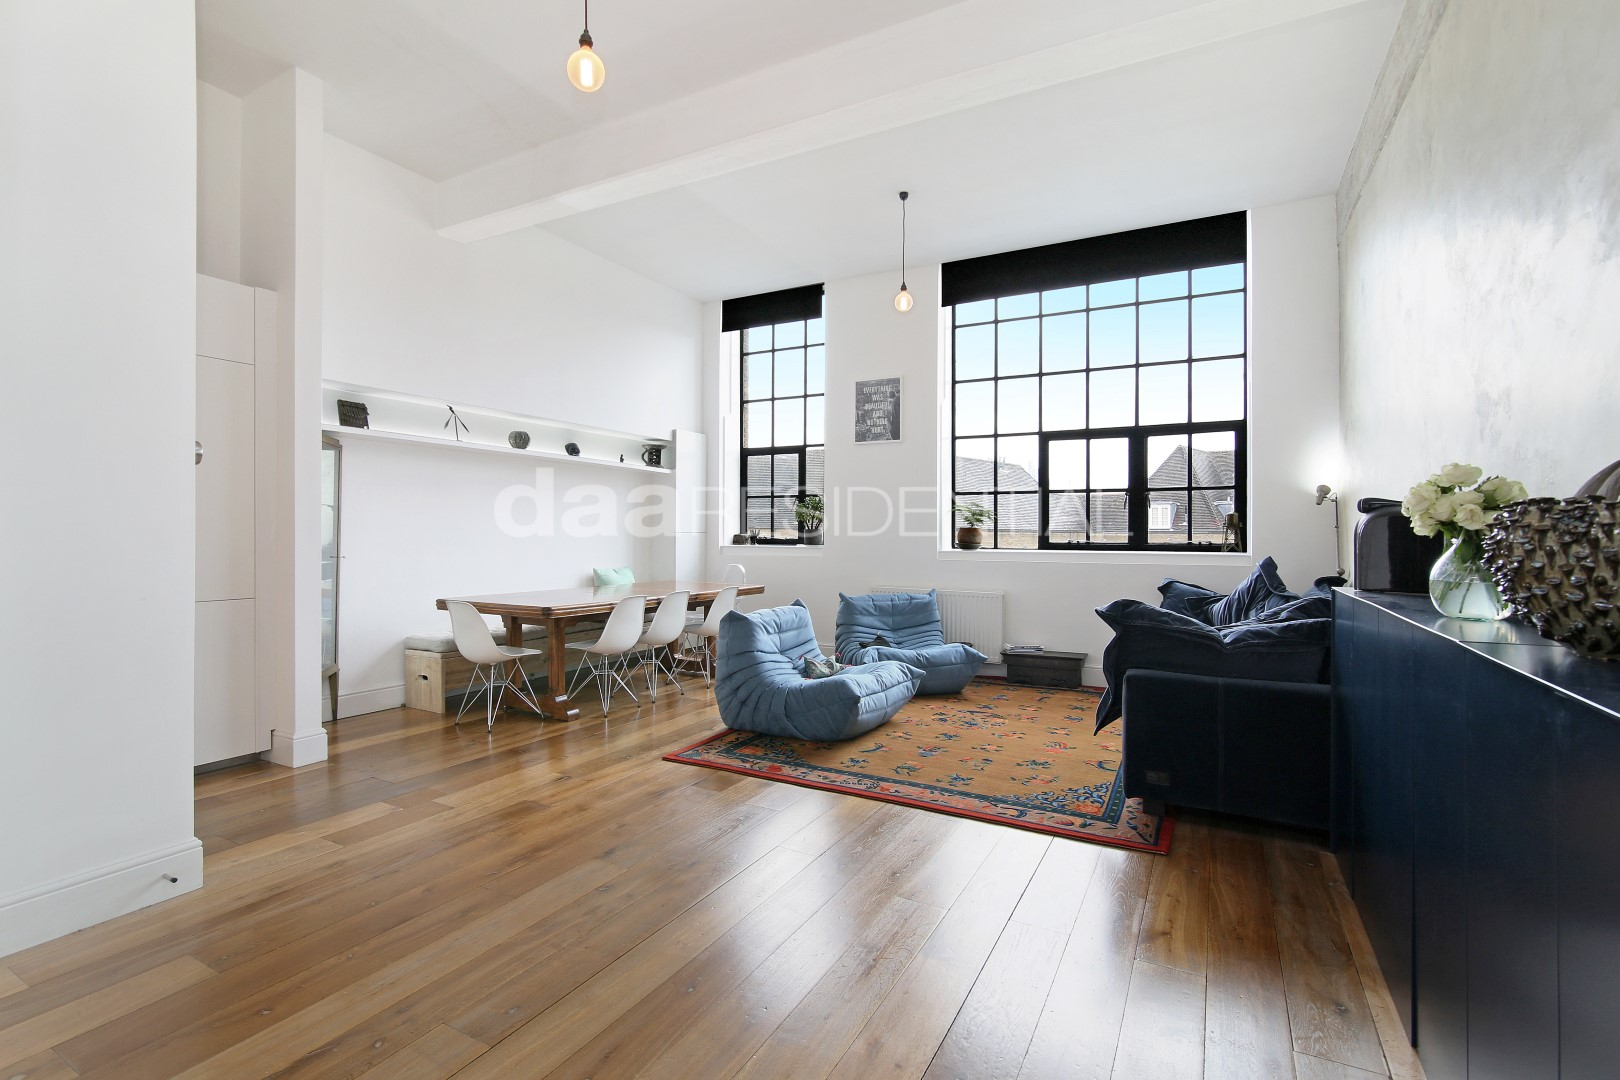 warehouse conversion,Family room